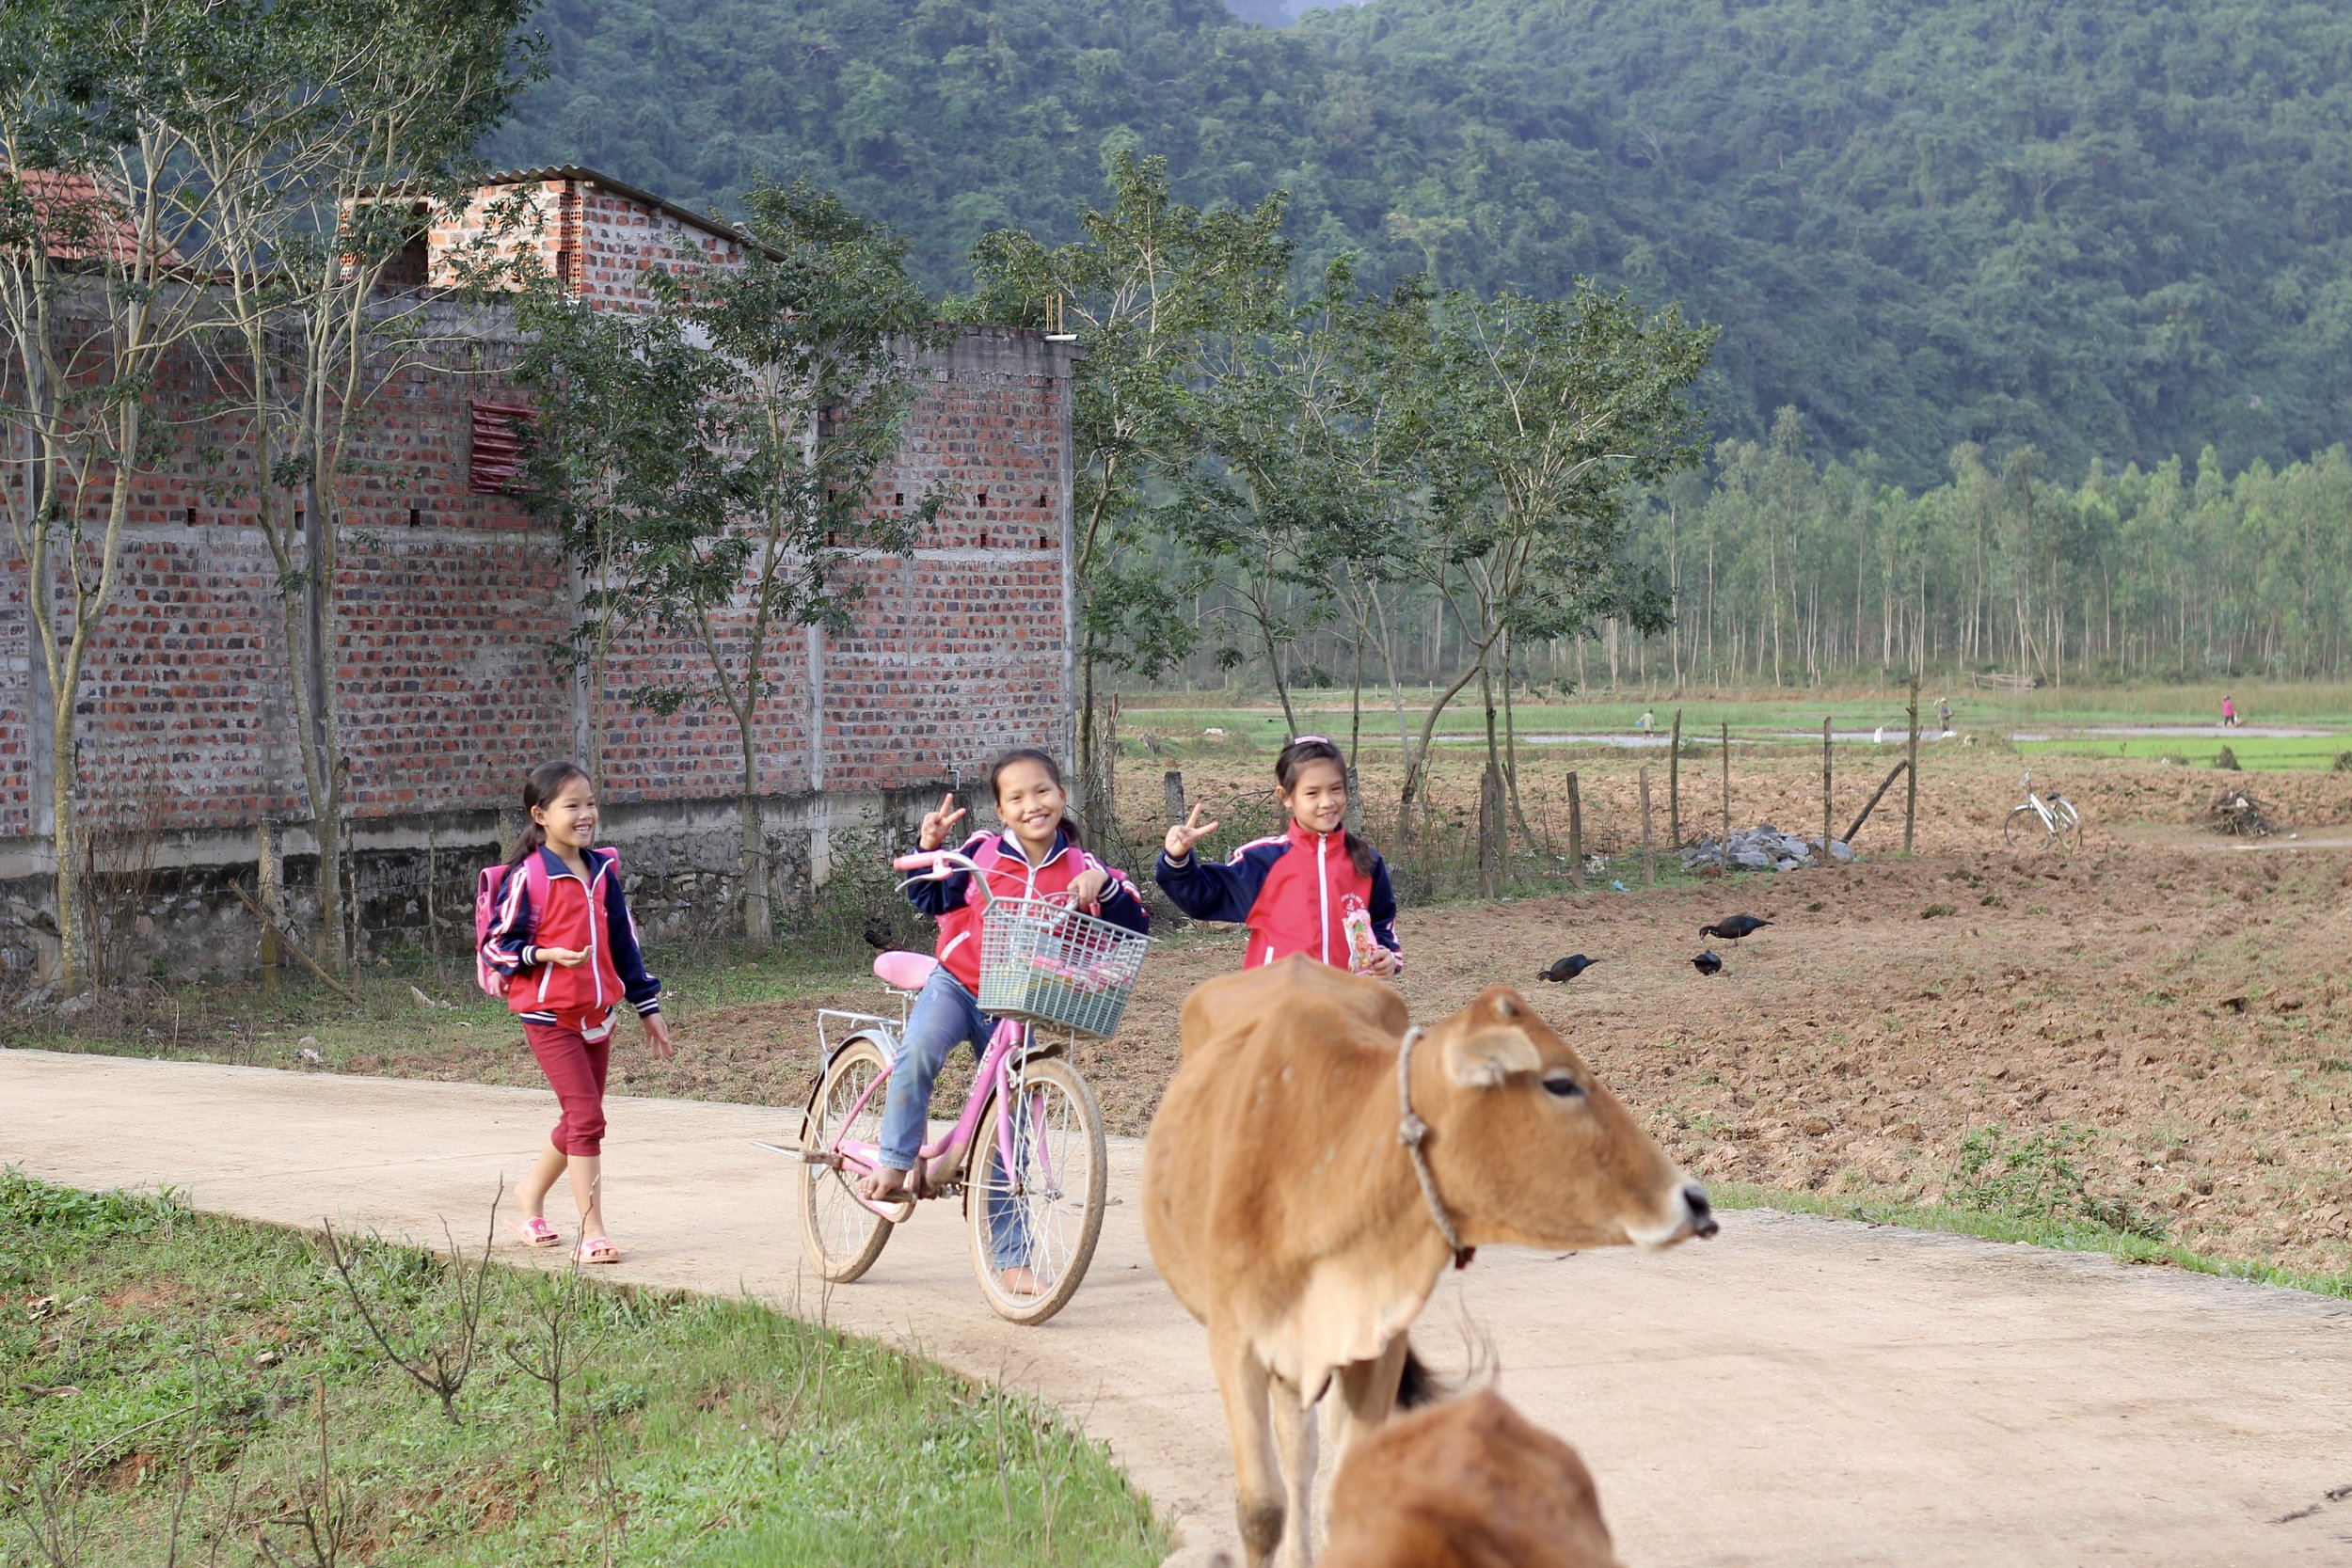 Three girls returning home from school in Central Vietnam, near Phong Nha National Park.